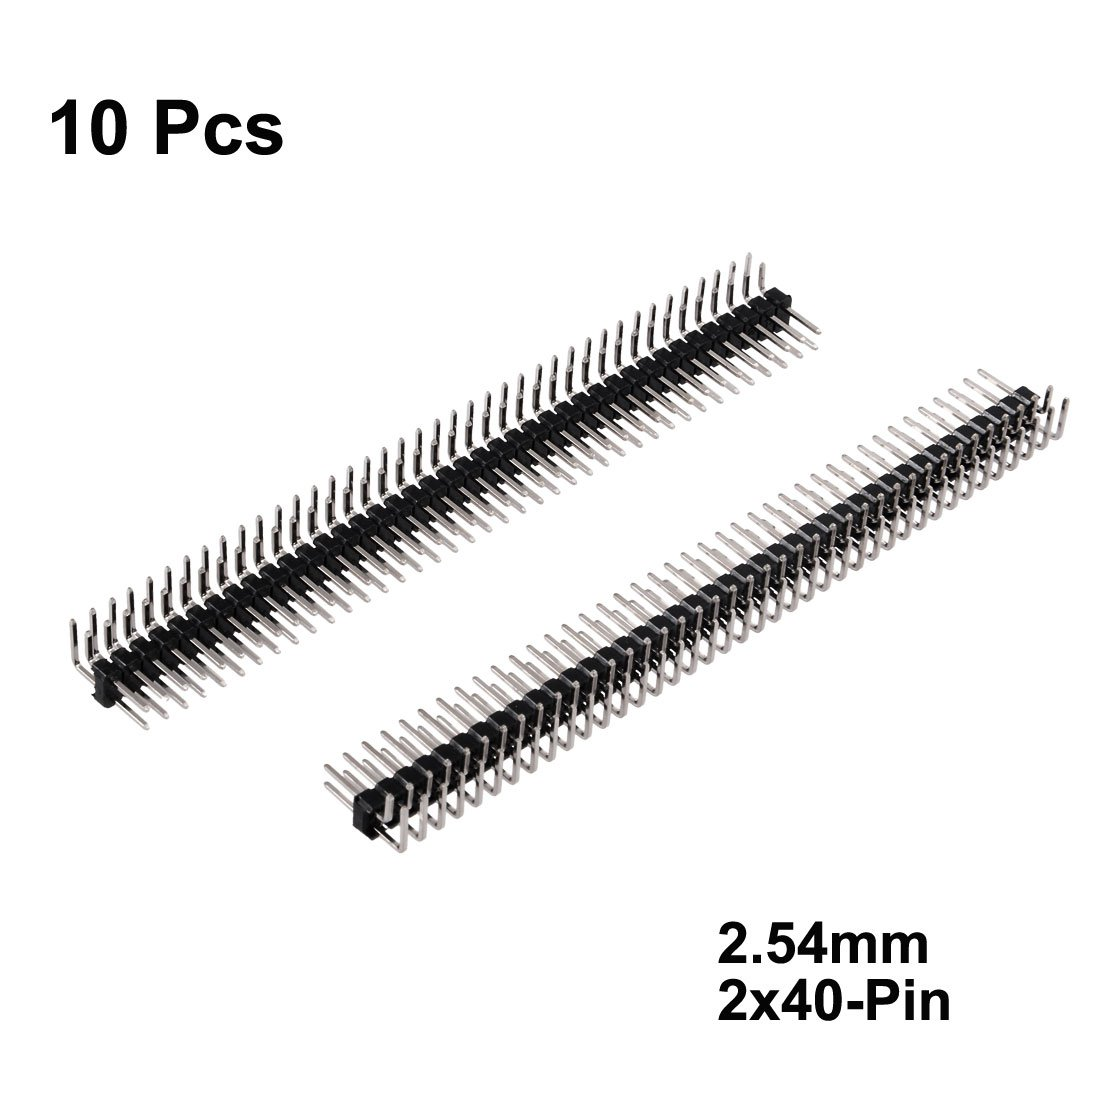 uxcell 10Pcs 2.54mm Pitch 40-Pins Double Row Right Angle Connector Pin Header Strip for Arduino Prototype Shield